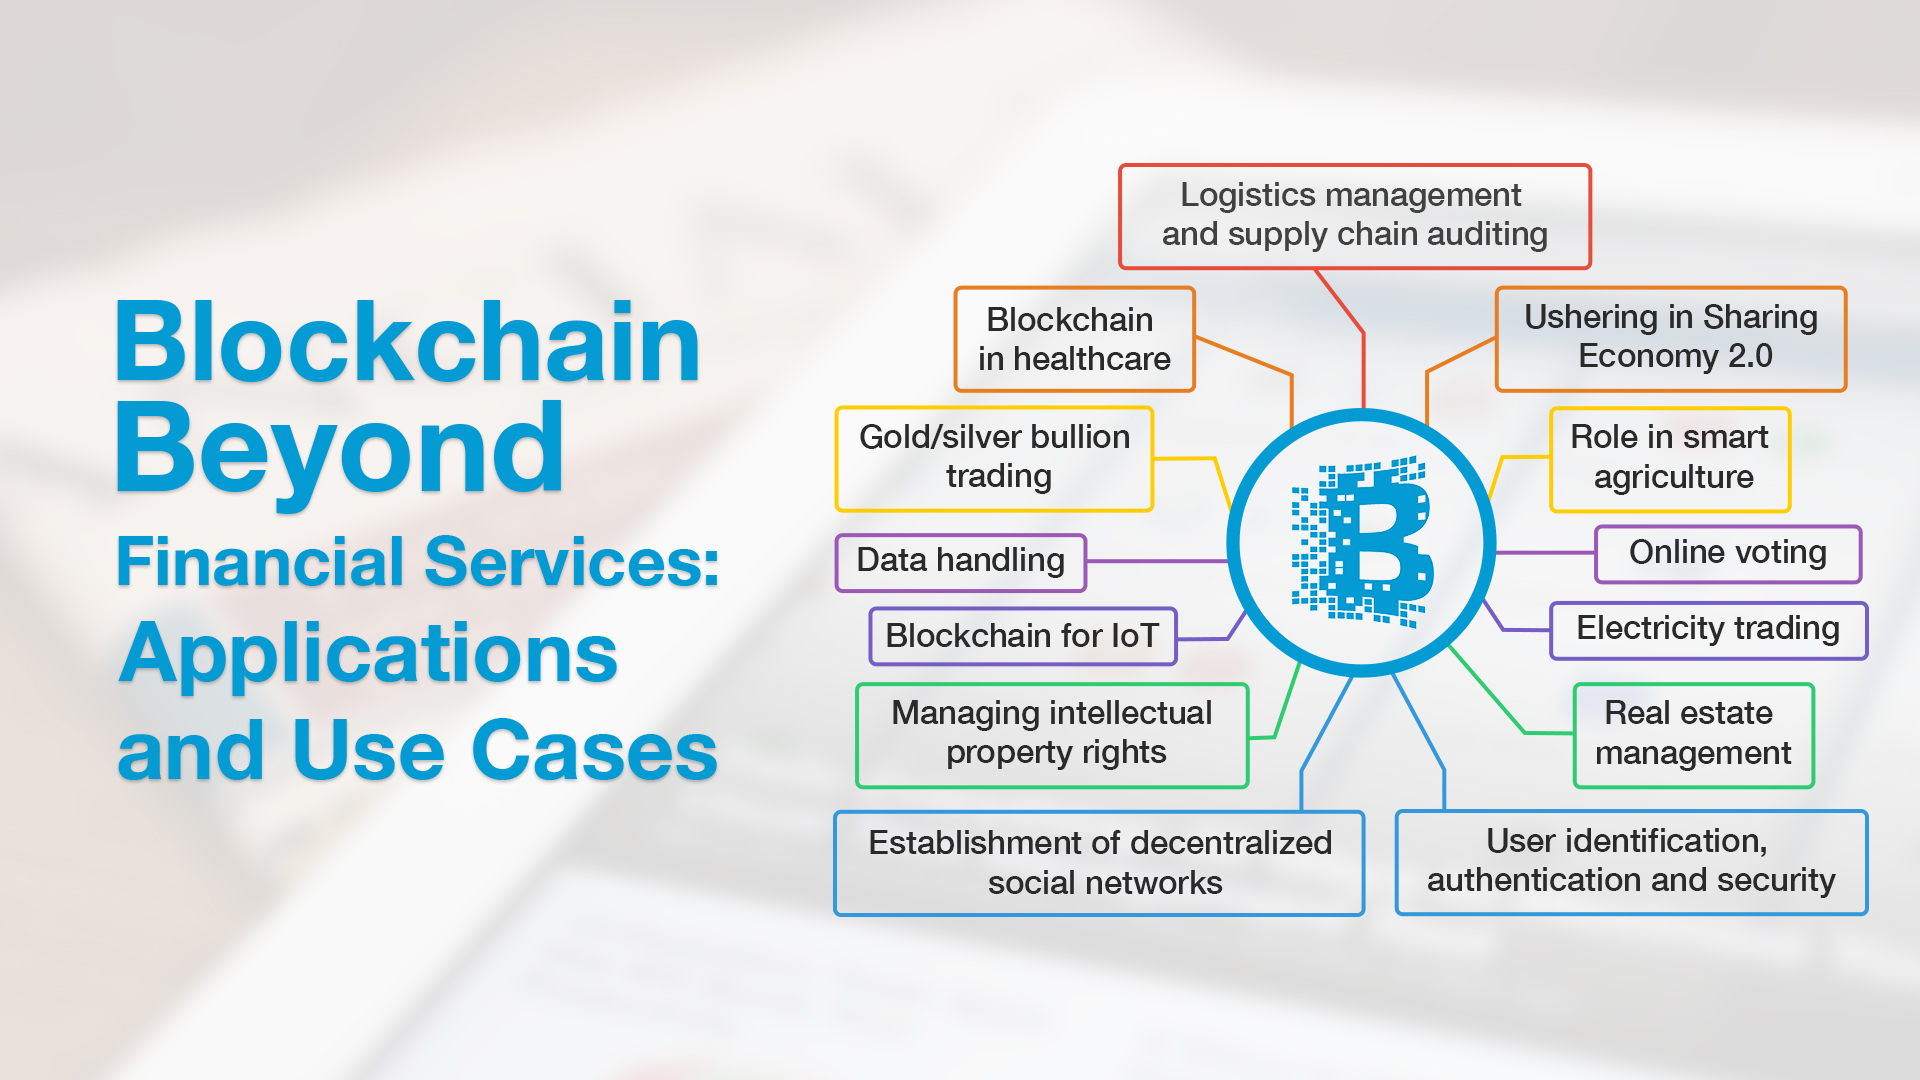 Uses of blockchains in different industries